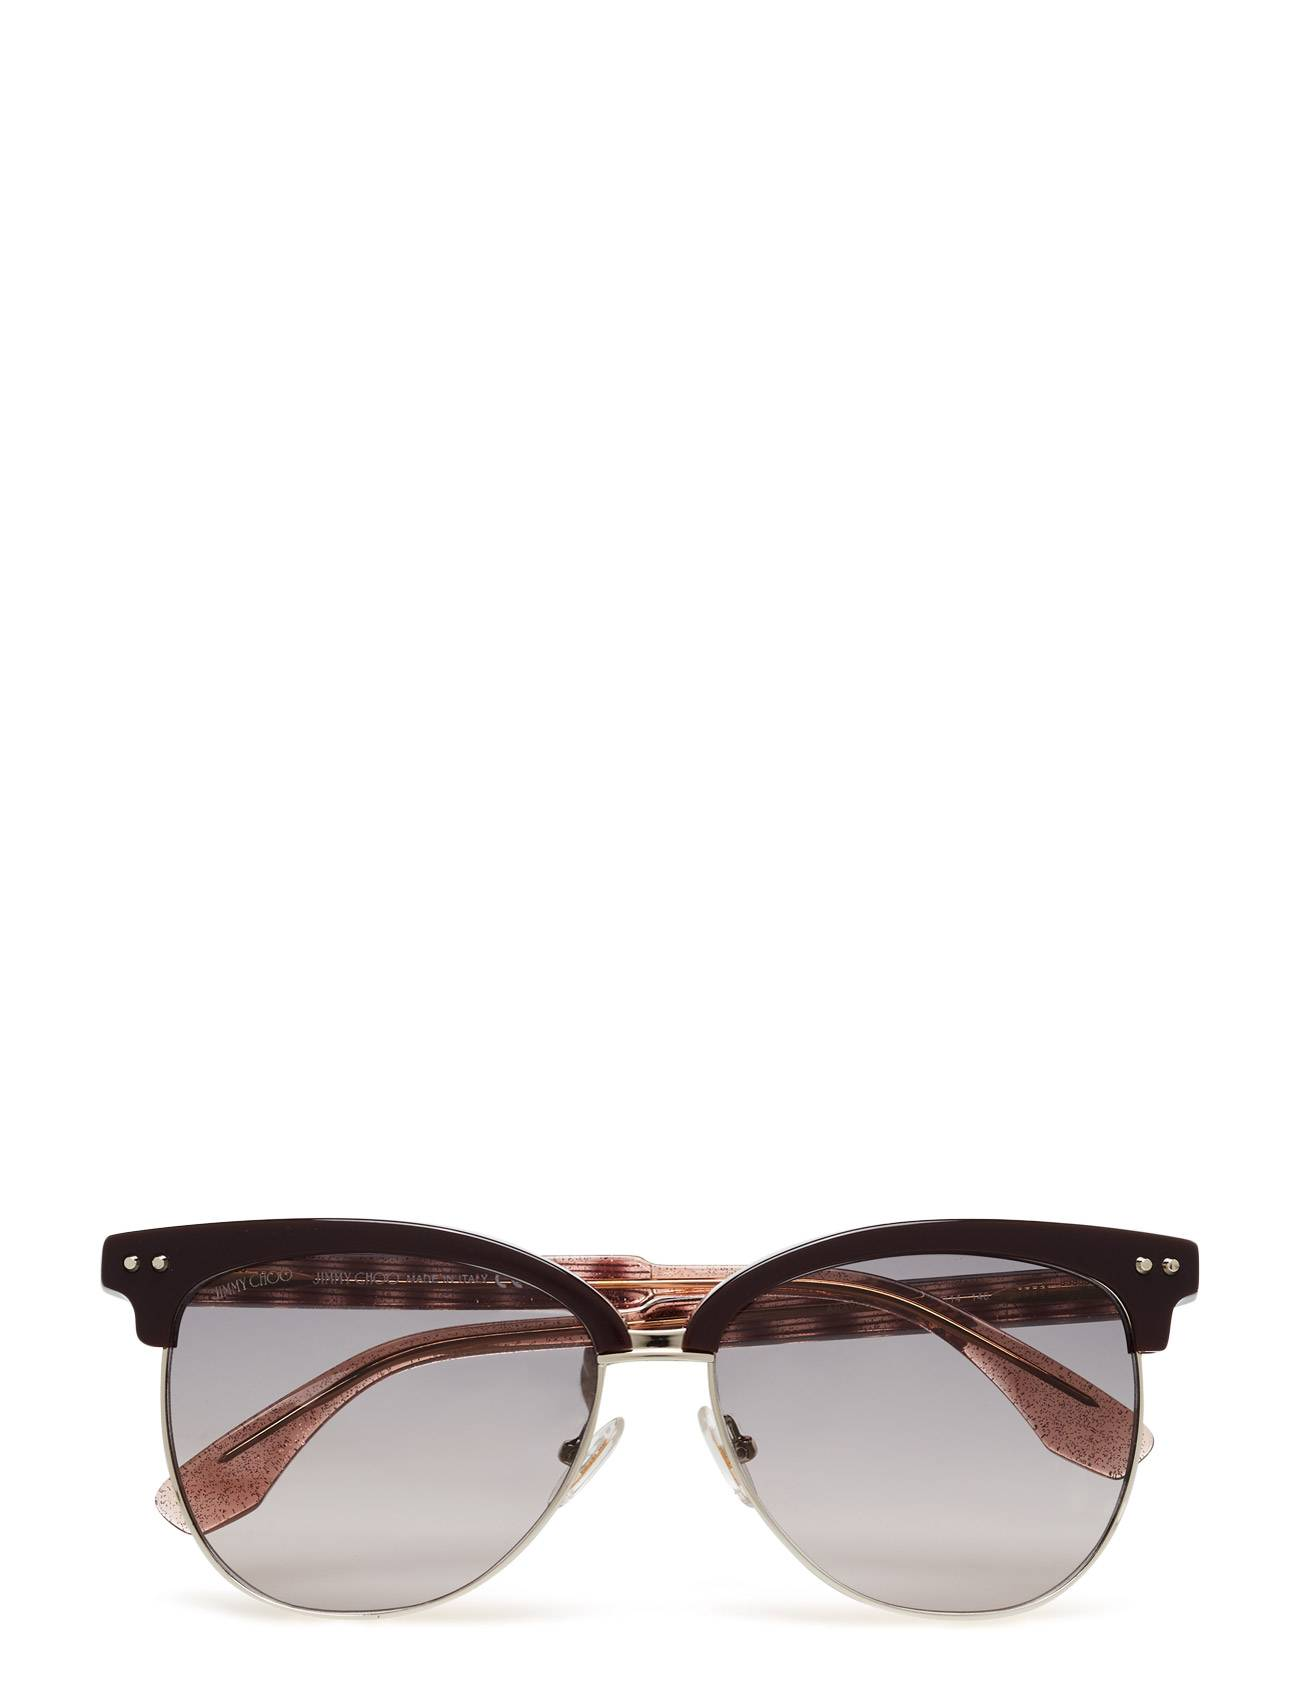 Jimmy Choo Sunglasses Araya/S